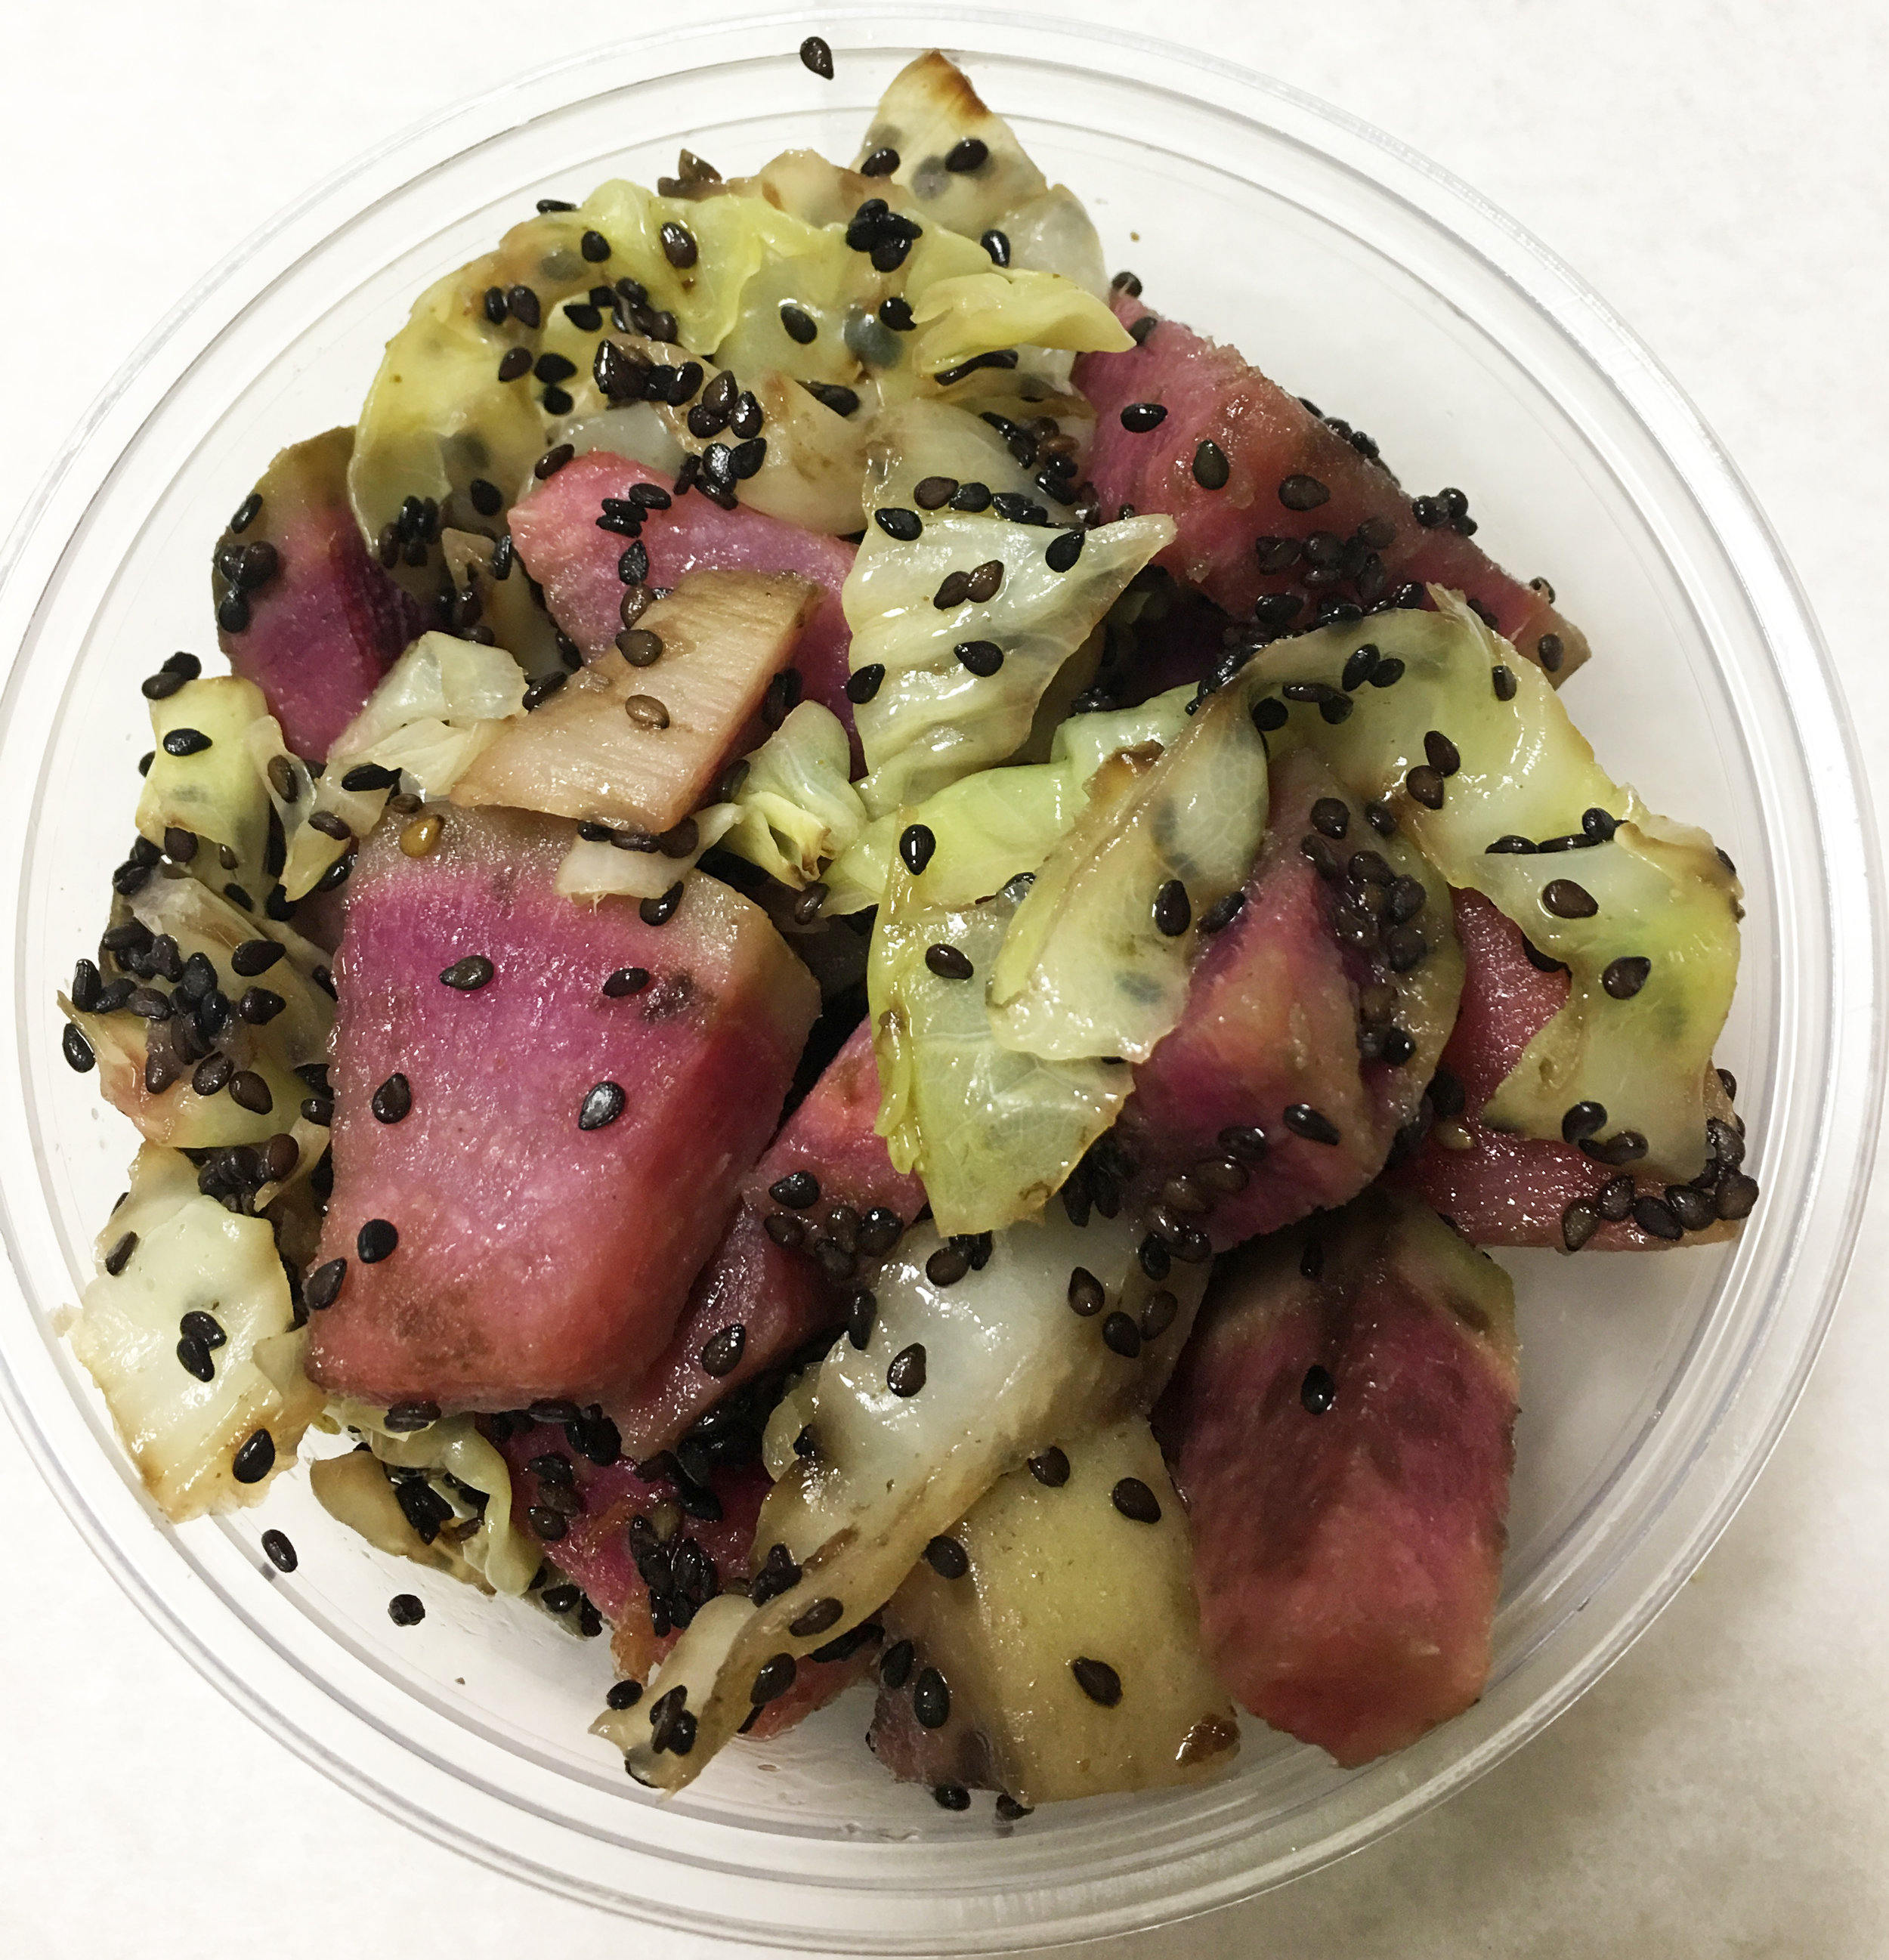 Boiled salad of watermelon radish, green cabbage and black sesame seeds.